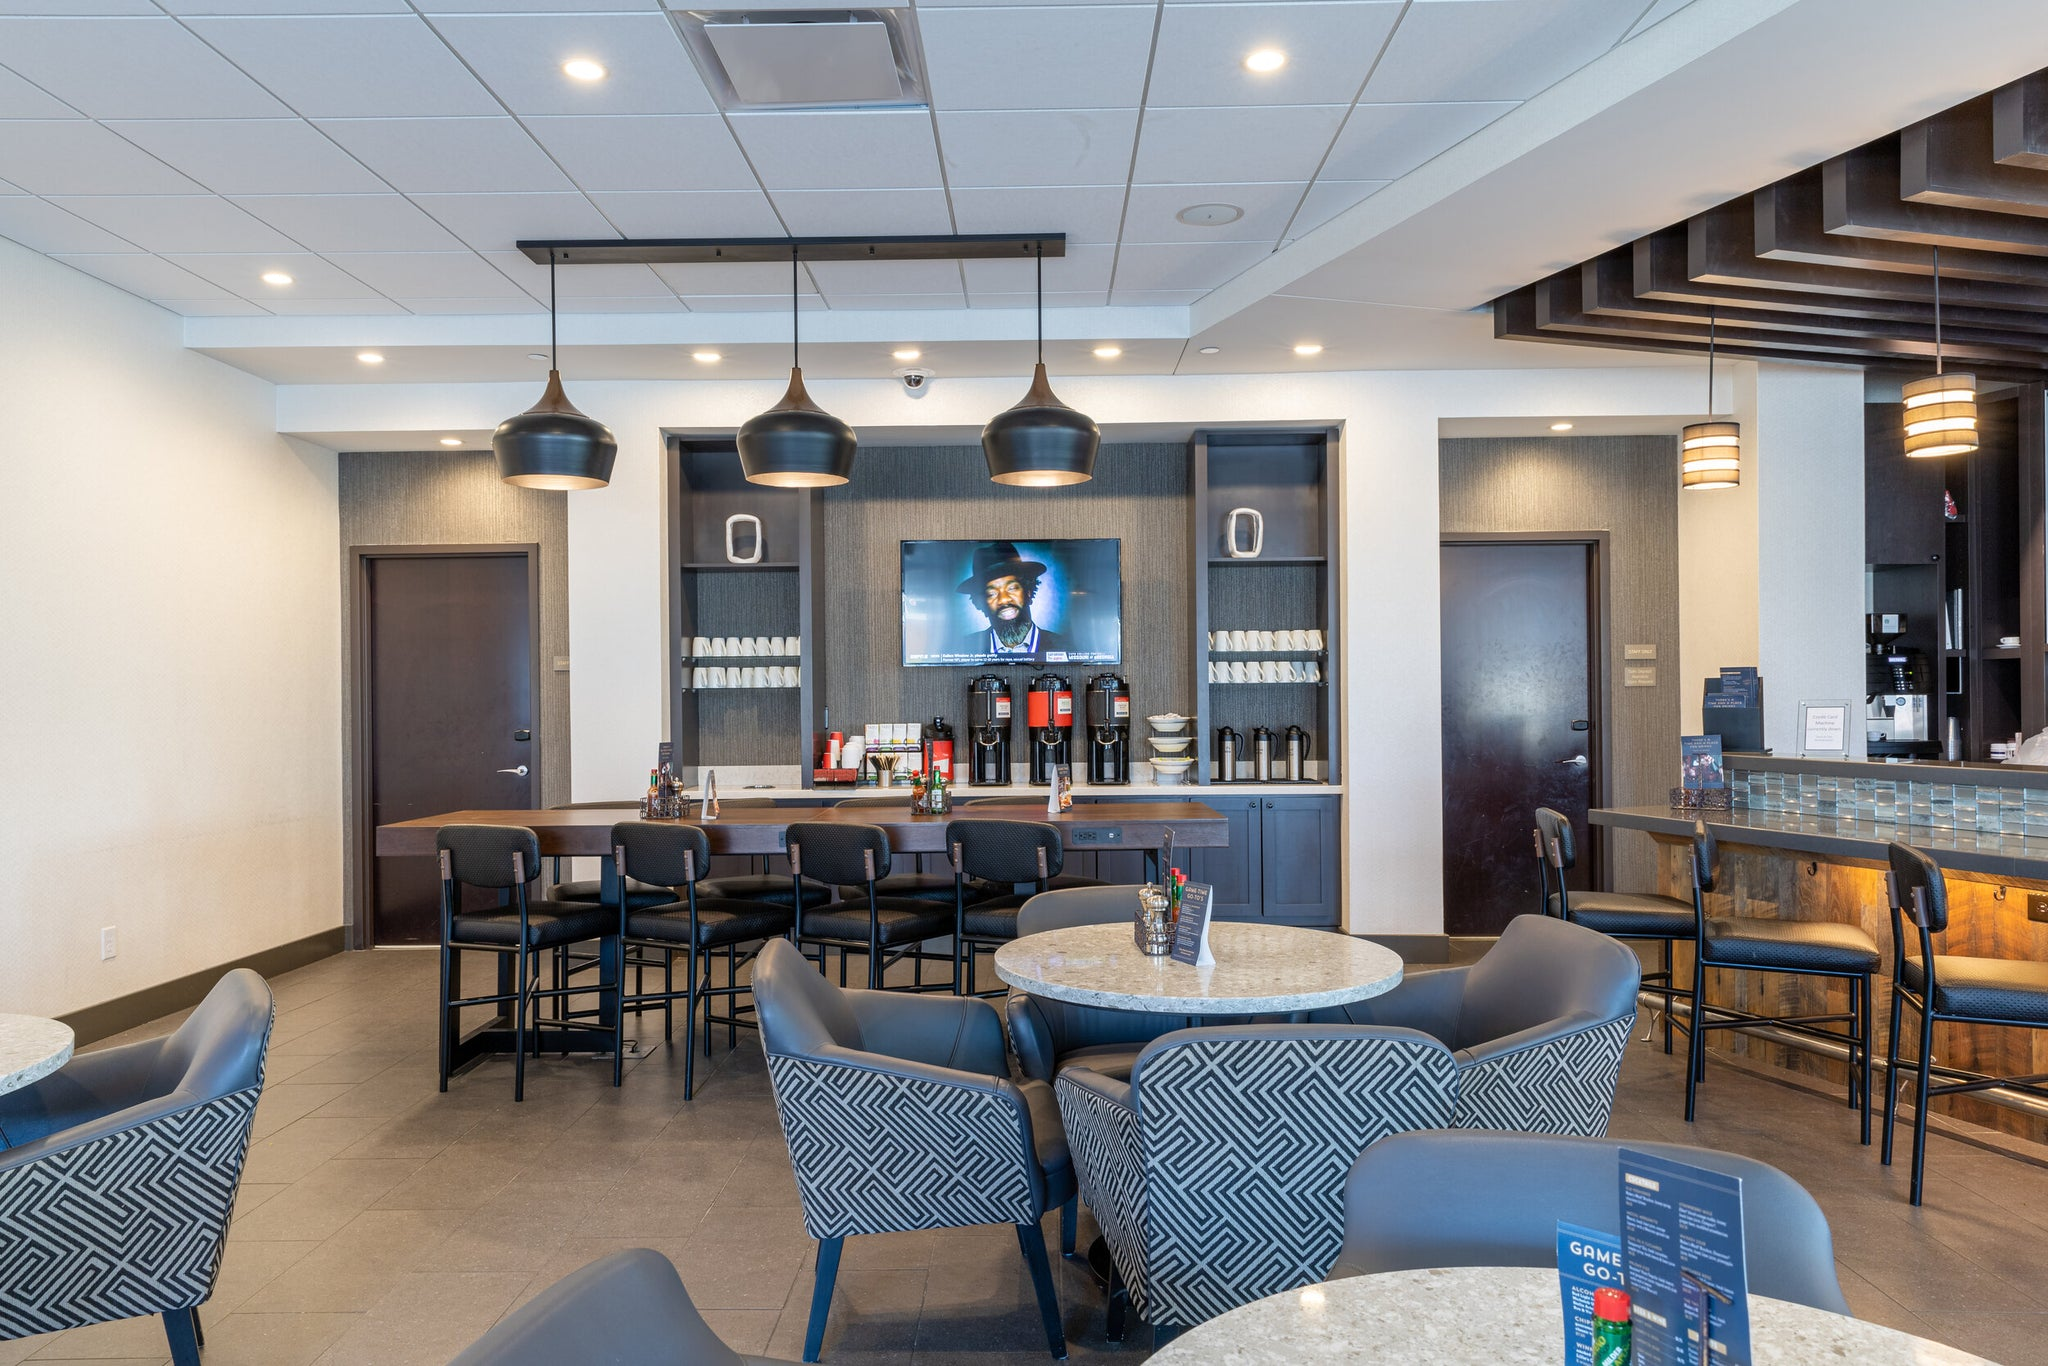 Hyatt Place Bar and Lobby area